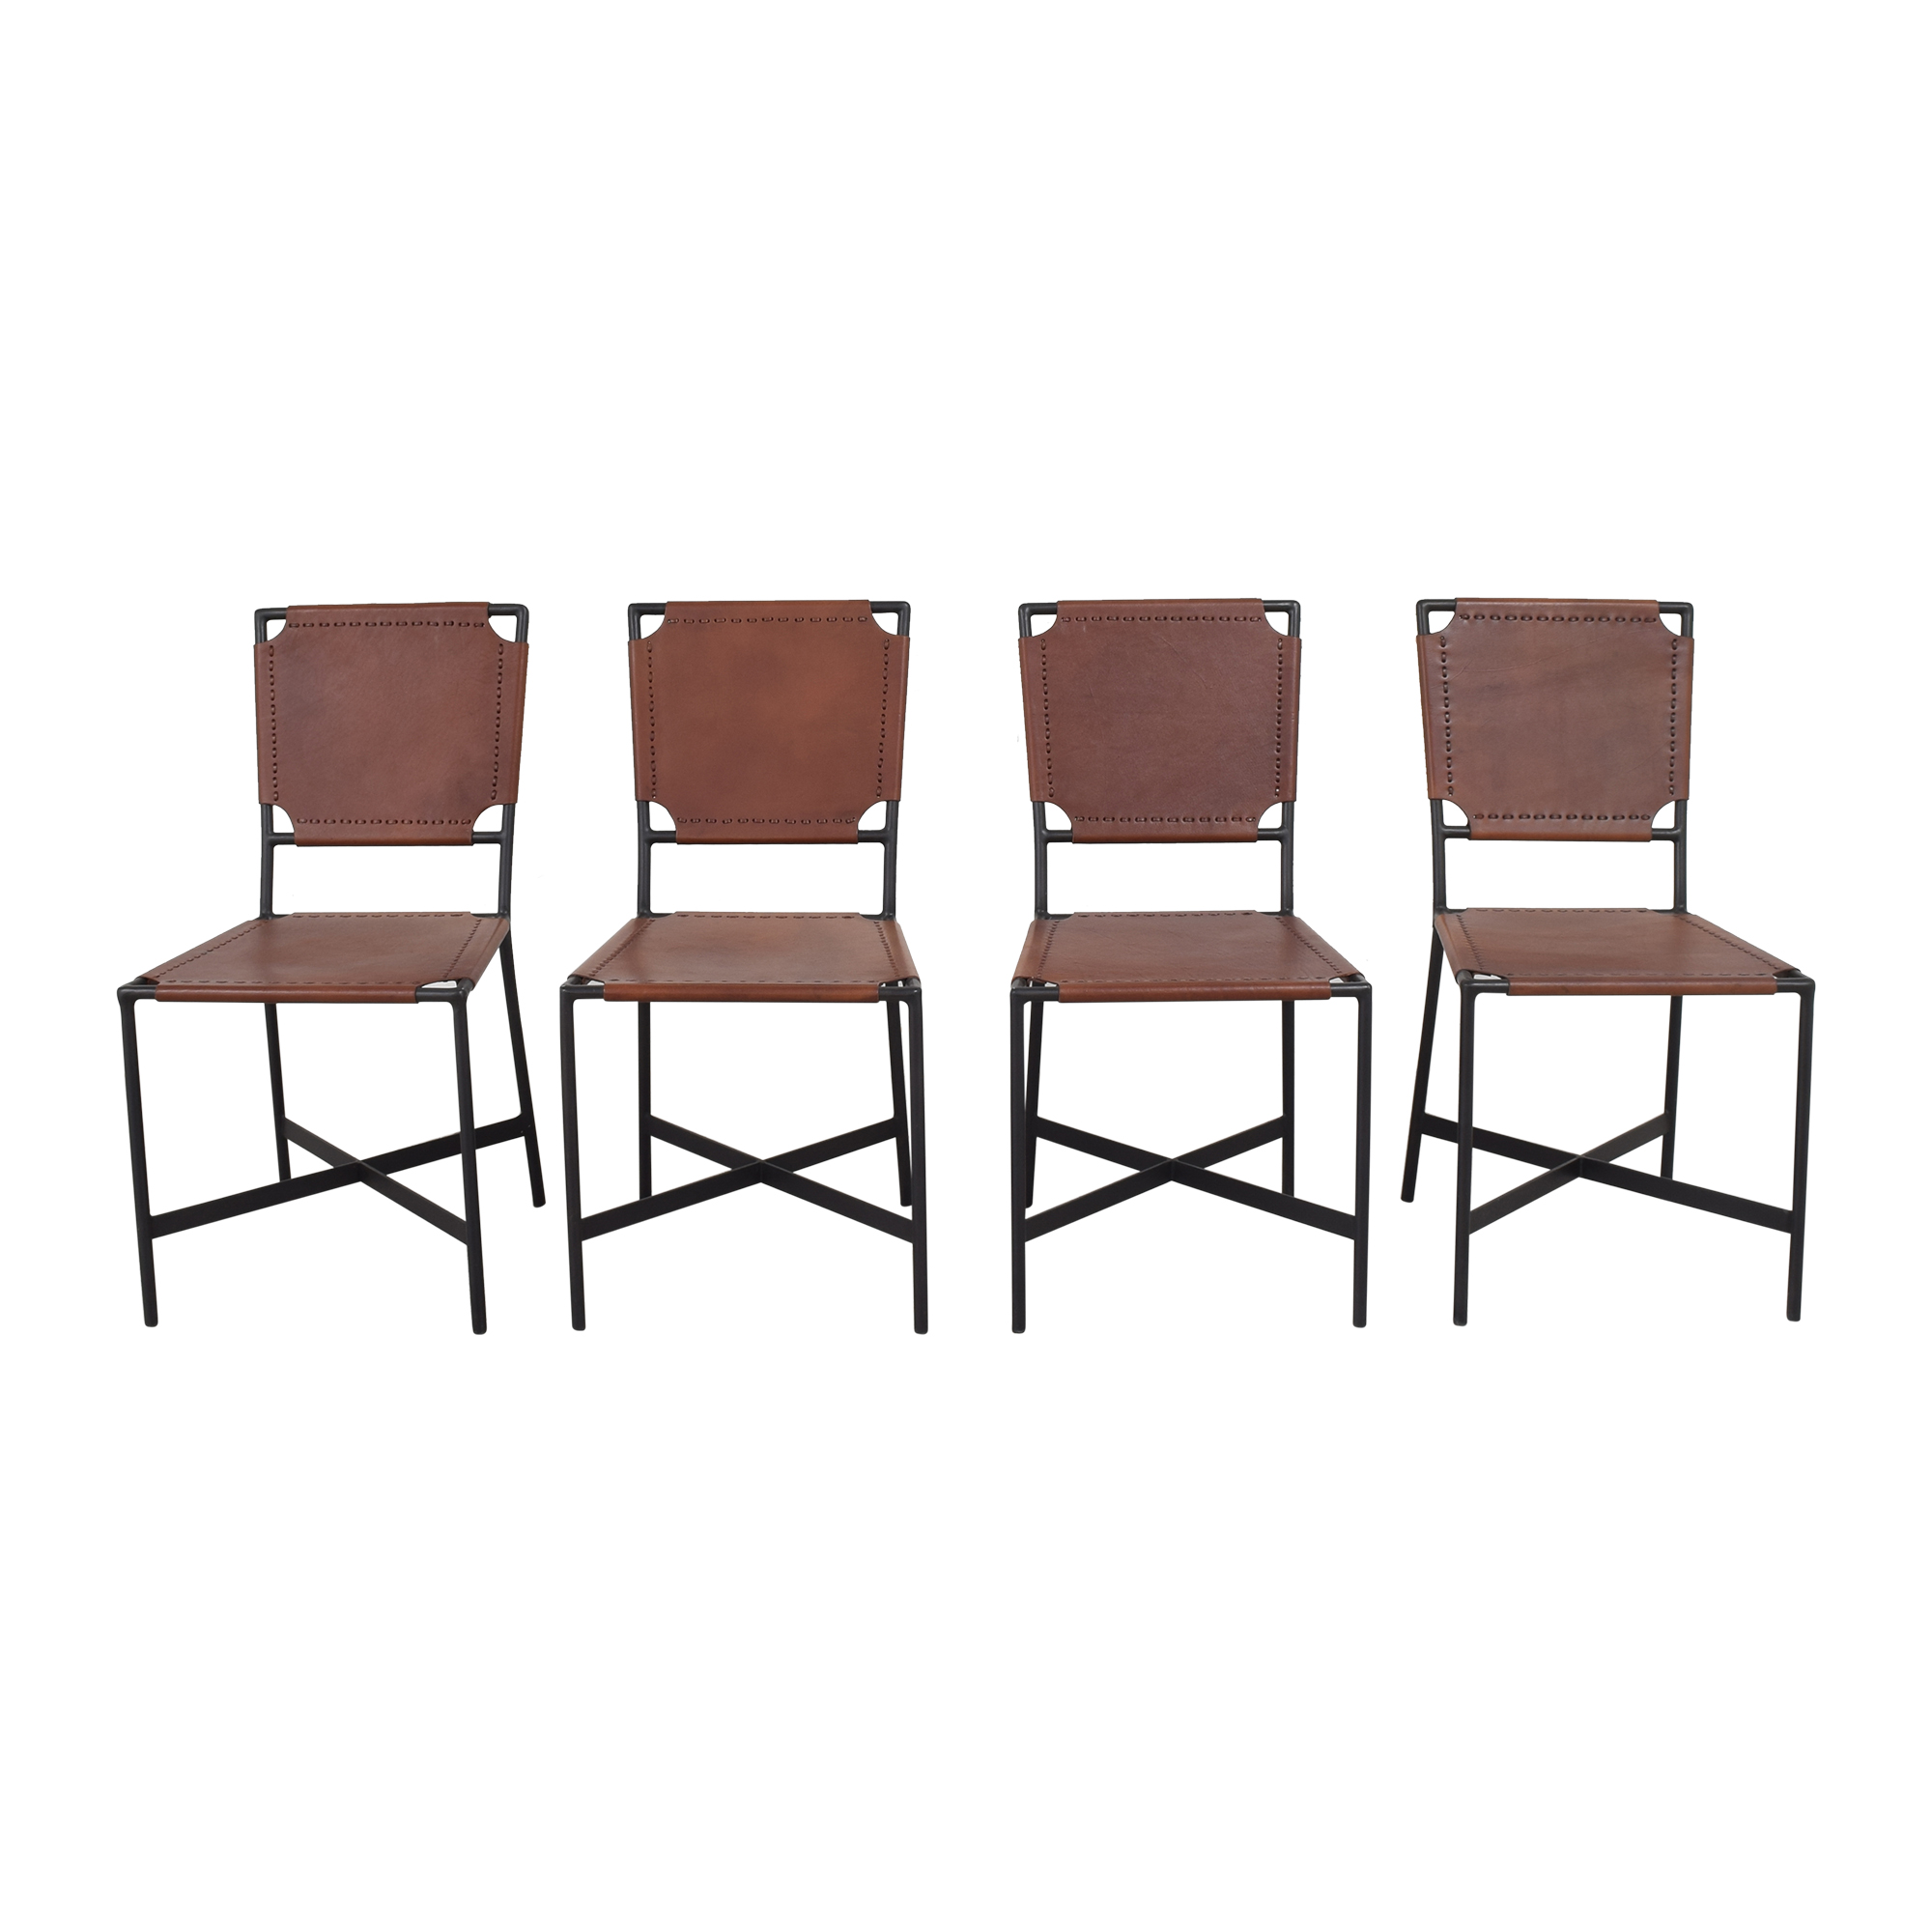 Crate & Barrel Crate & Barrel Laredo Dining Chairs Dining Chairs